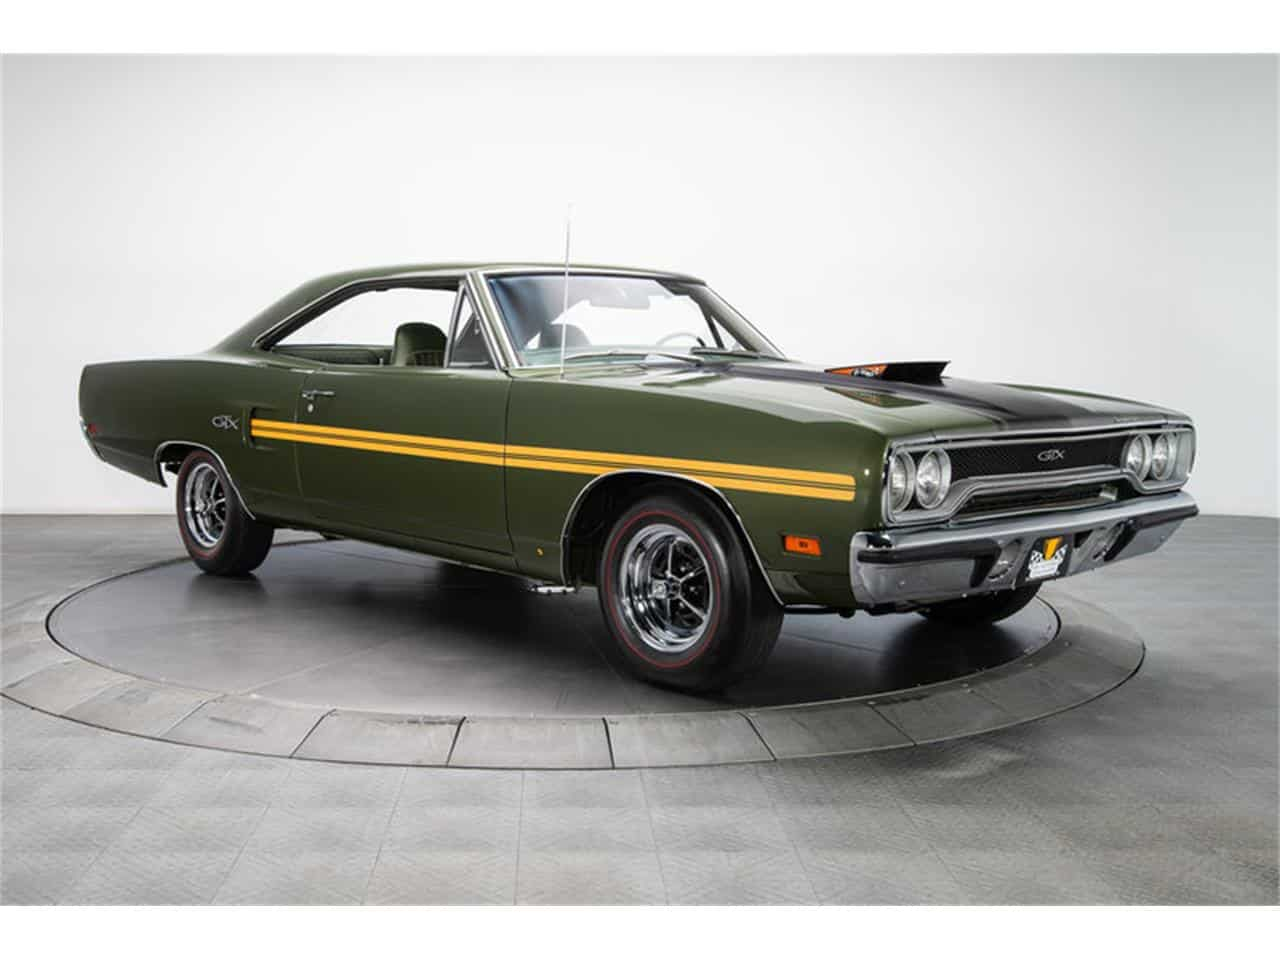 RM Sotheby's - 1967 Plymouth GTX Coupe | Auburn Fall 2018